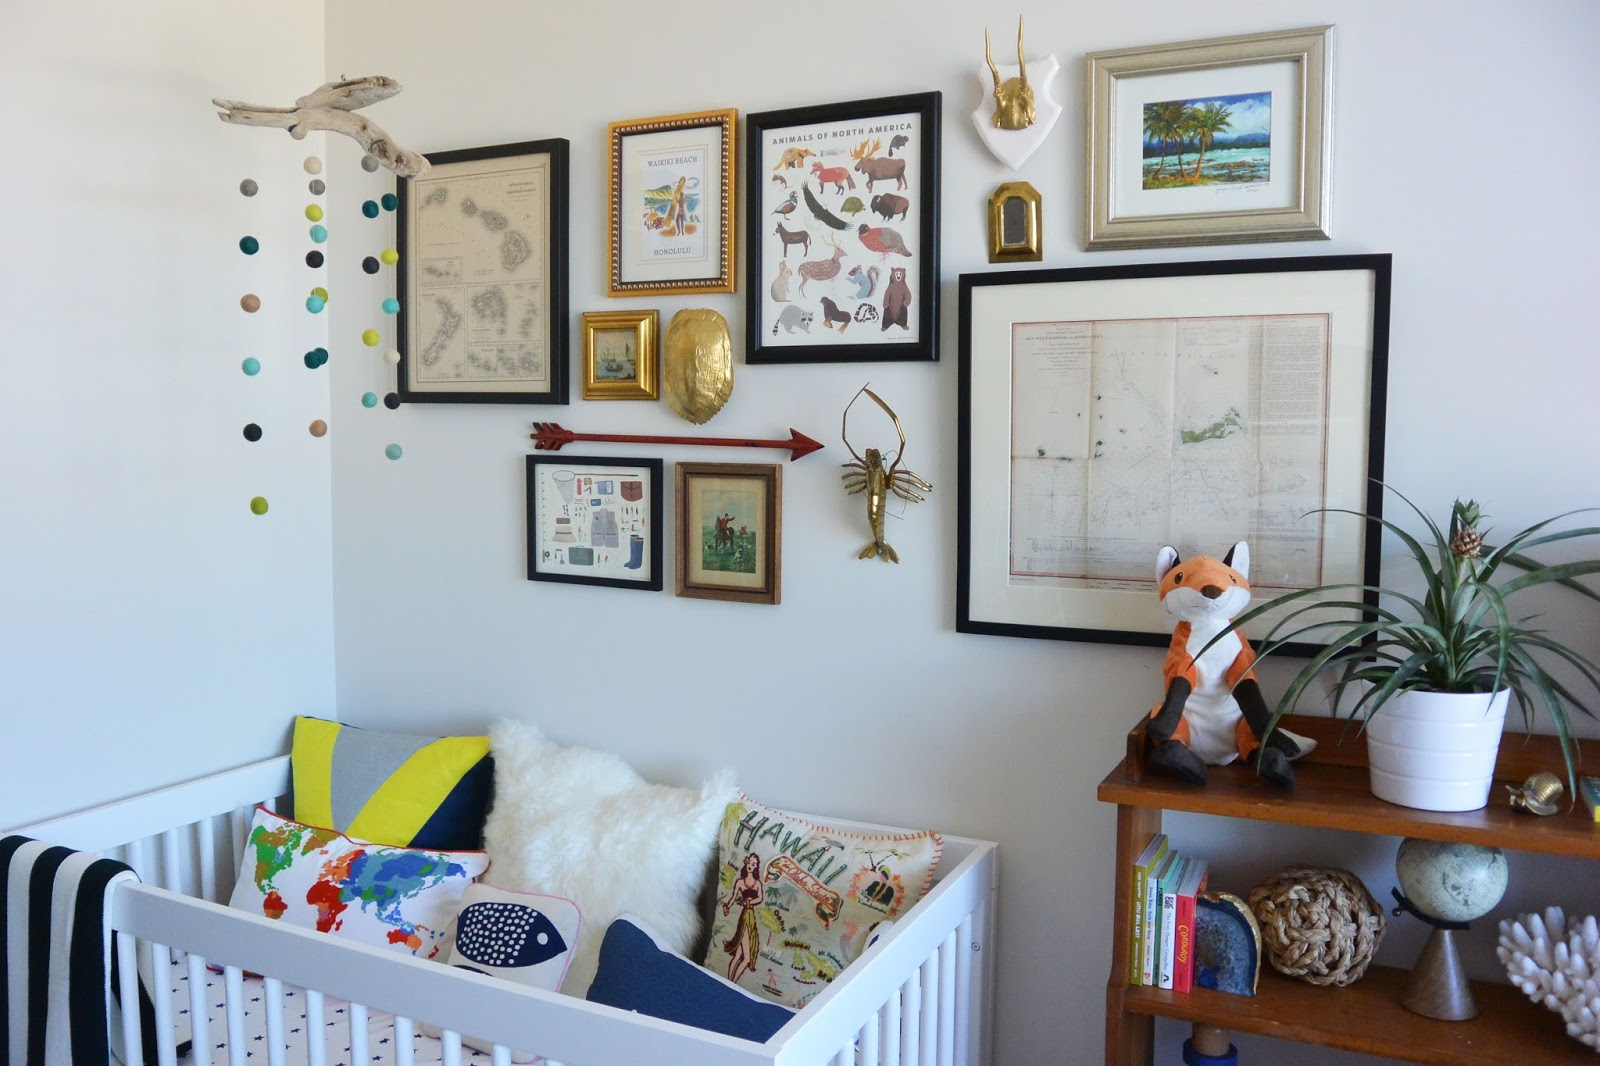 Used Look Möbel Diy ~ Life with a dash of whimsy: diy driftwood and felt ball mobile